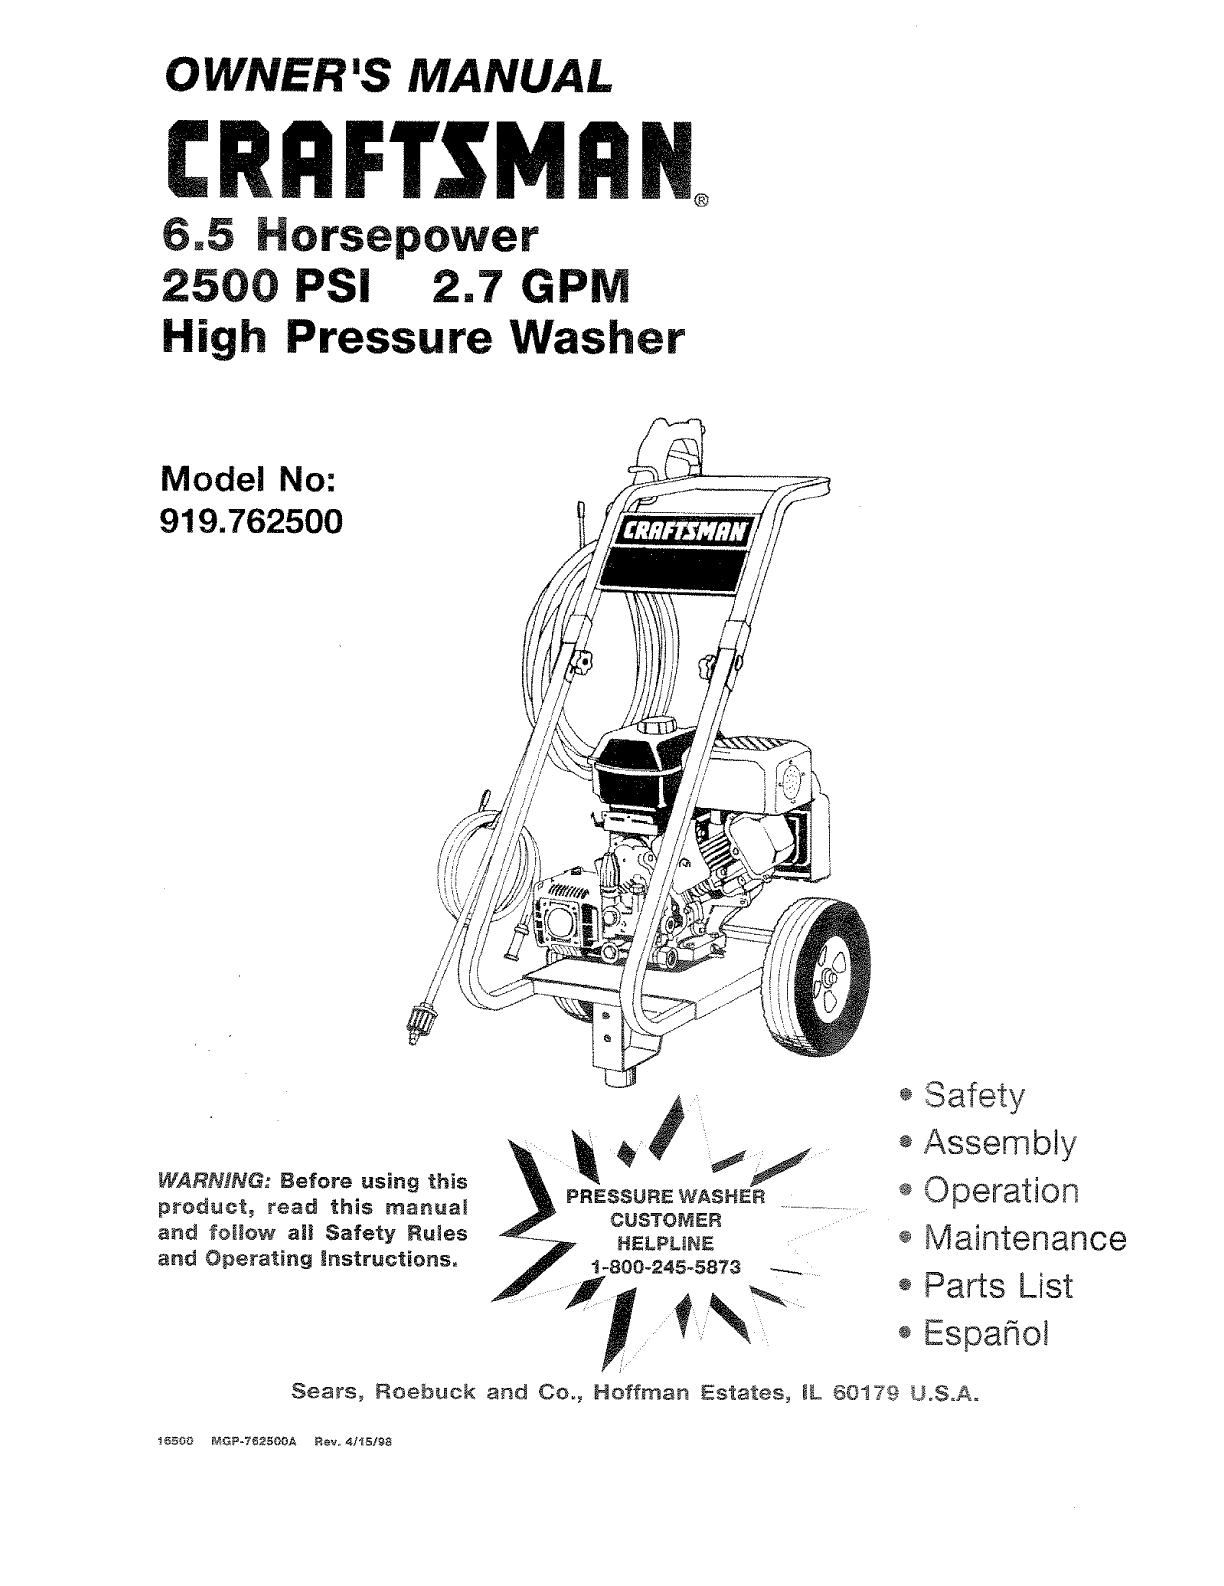 Craftsman Pressure Washer 919.762500 User Guide